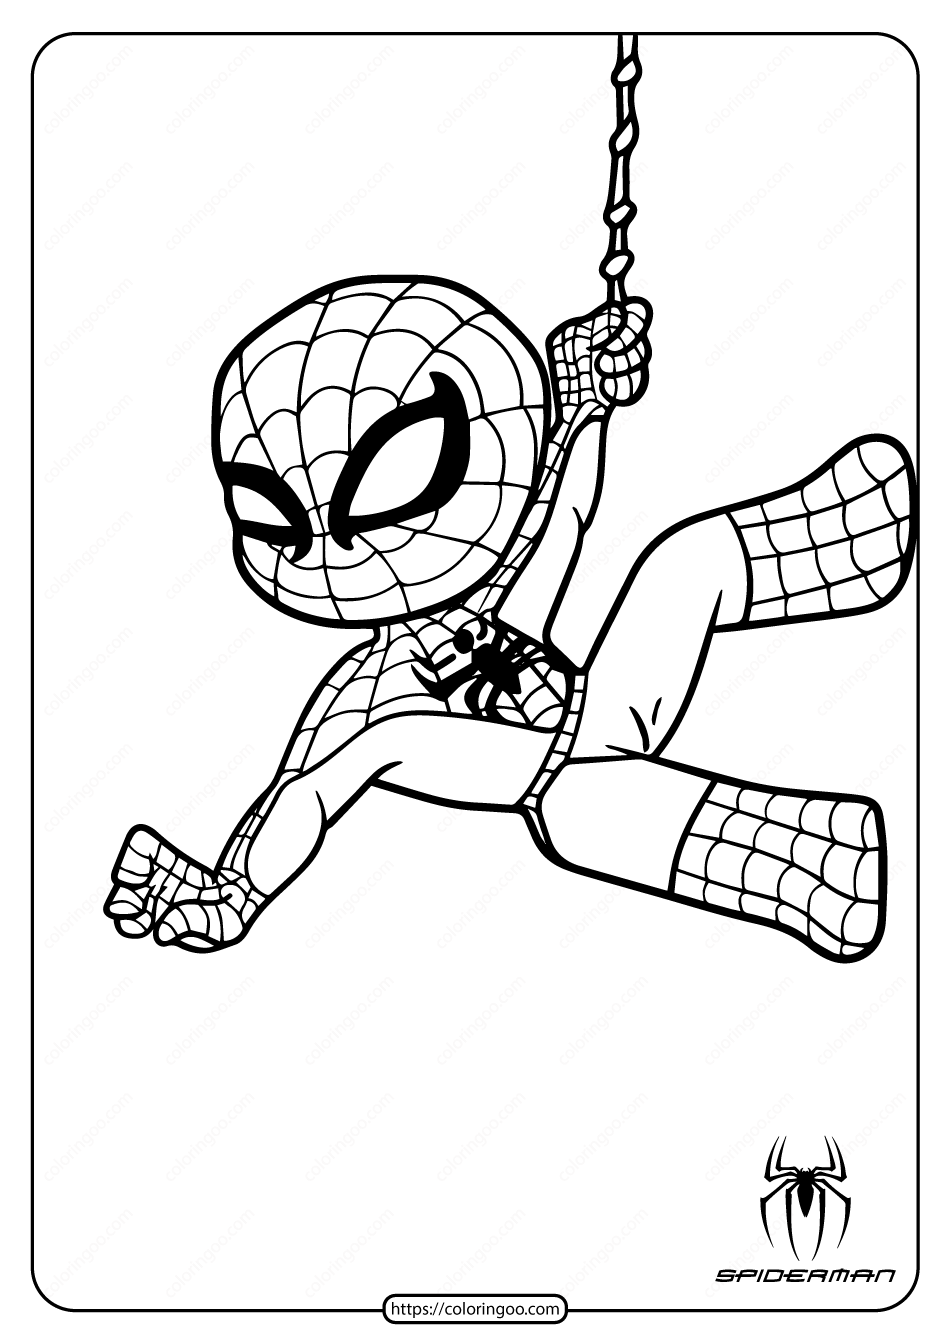 coloring picture color for kids coloring picture color for kids color picture kids coloring for